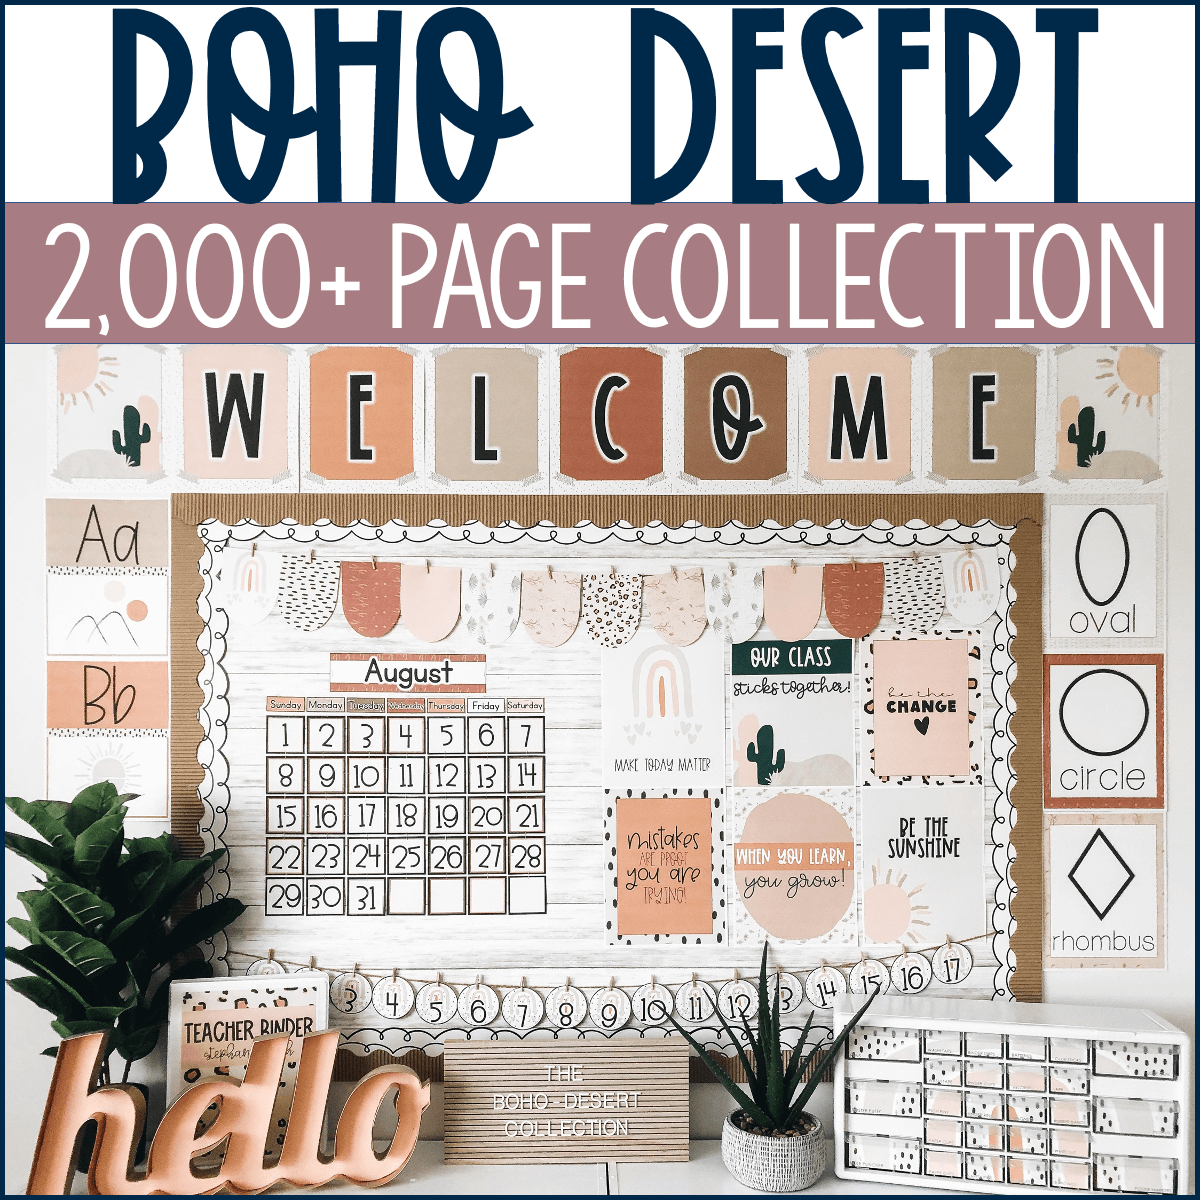 Use this Boho Desert Collection to bring your classroom organization ideas to life.